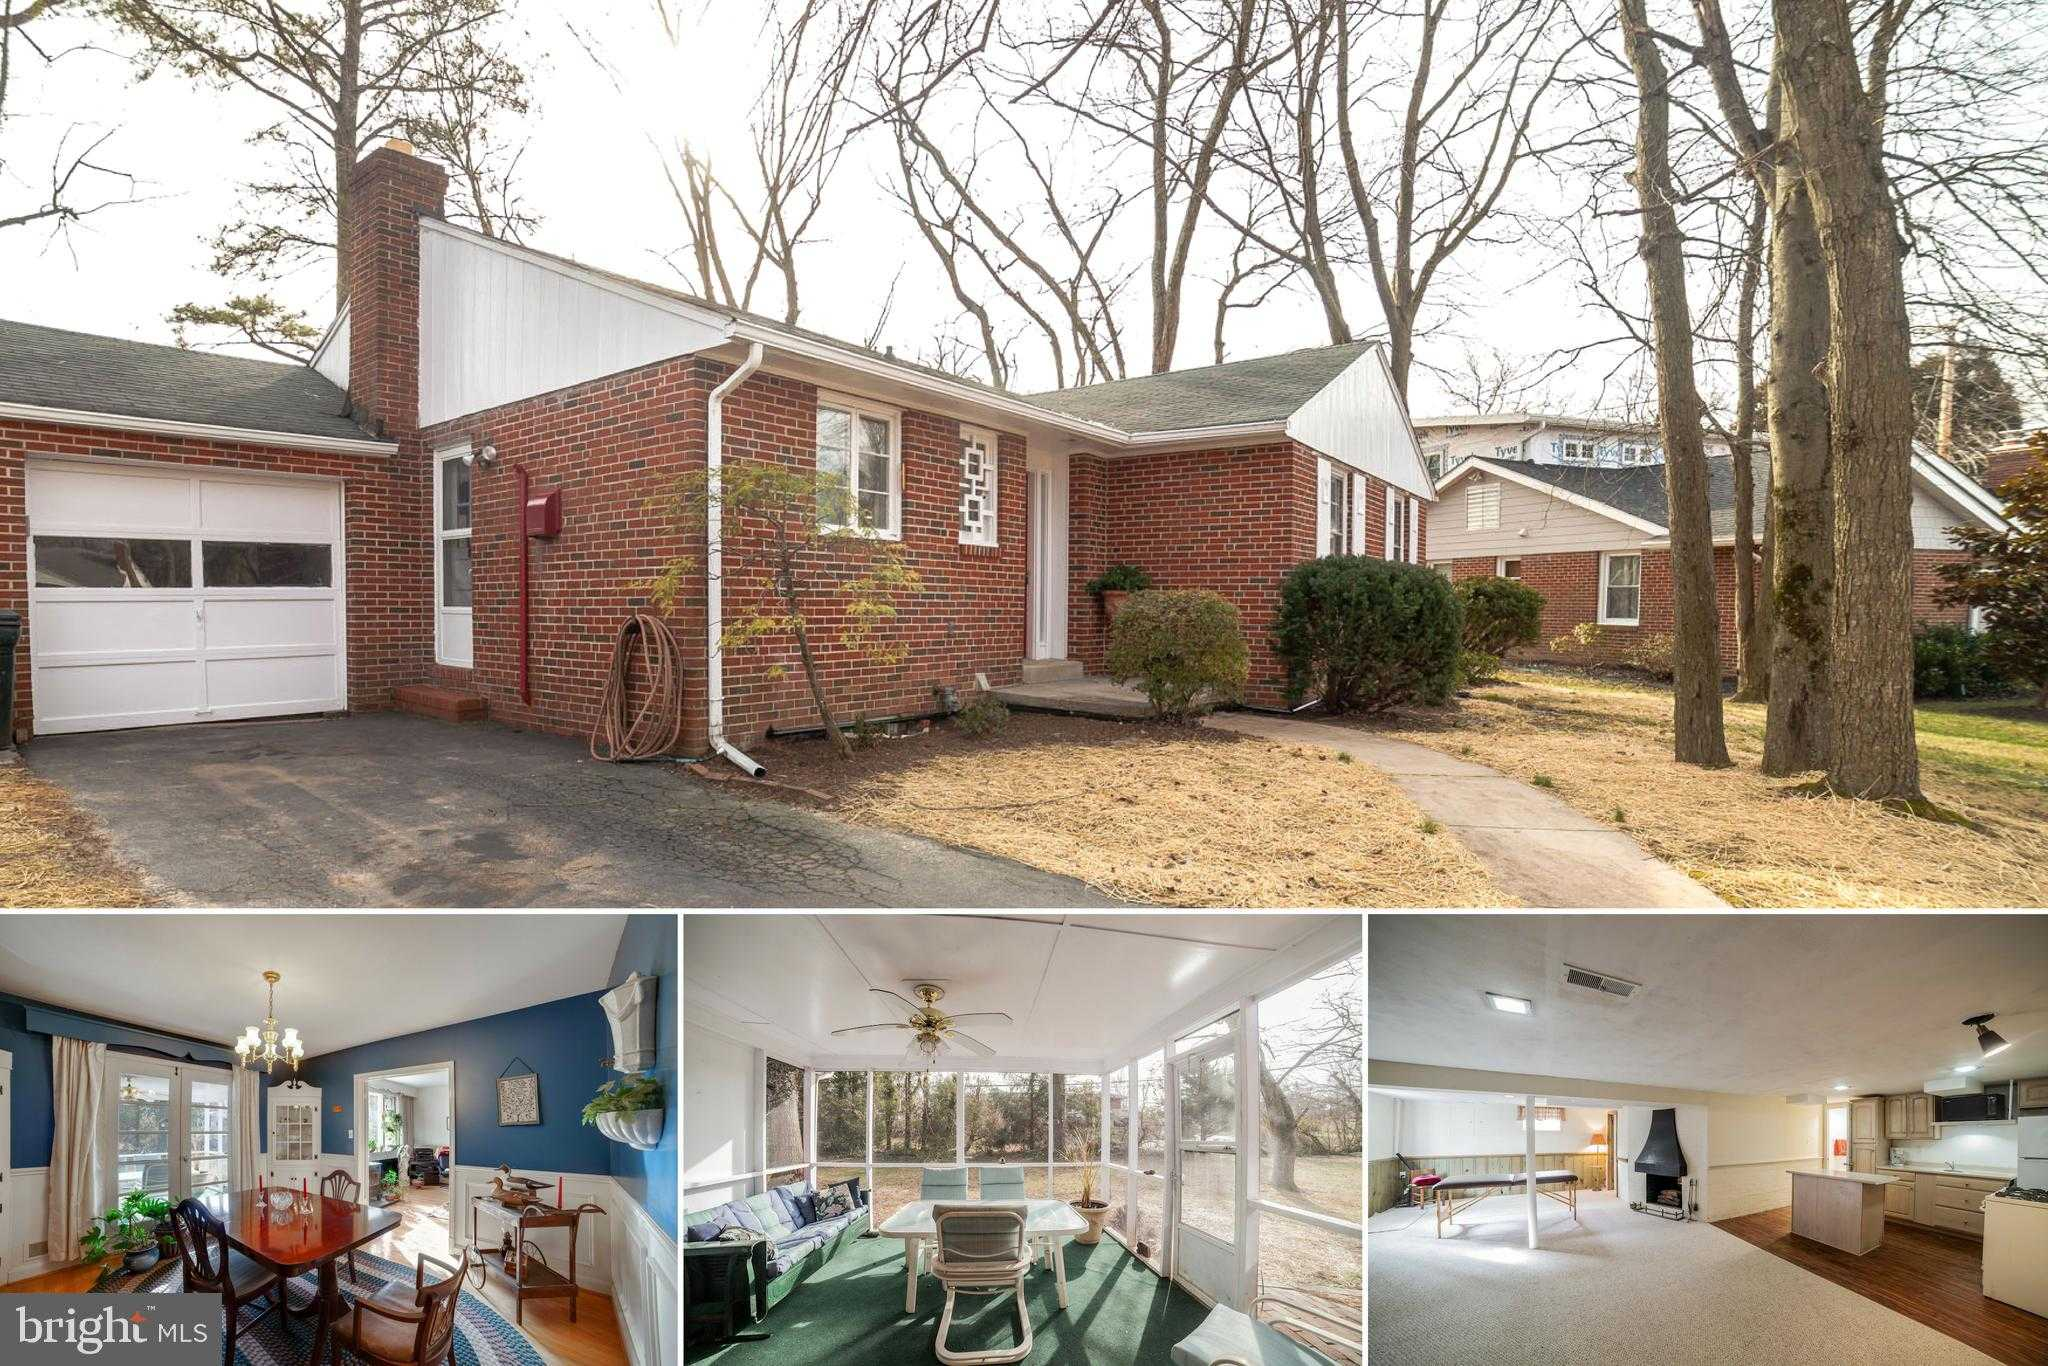 $310,000 - 4Br/3Ba -  for Sale in Pinedale, Perry Hall